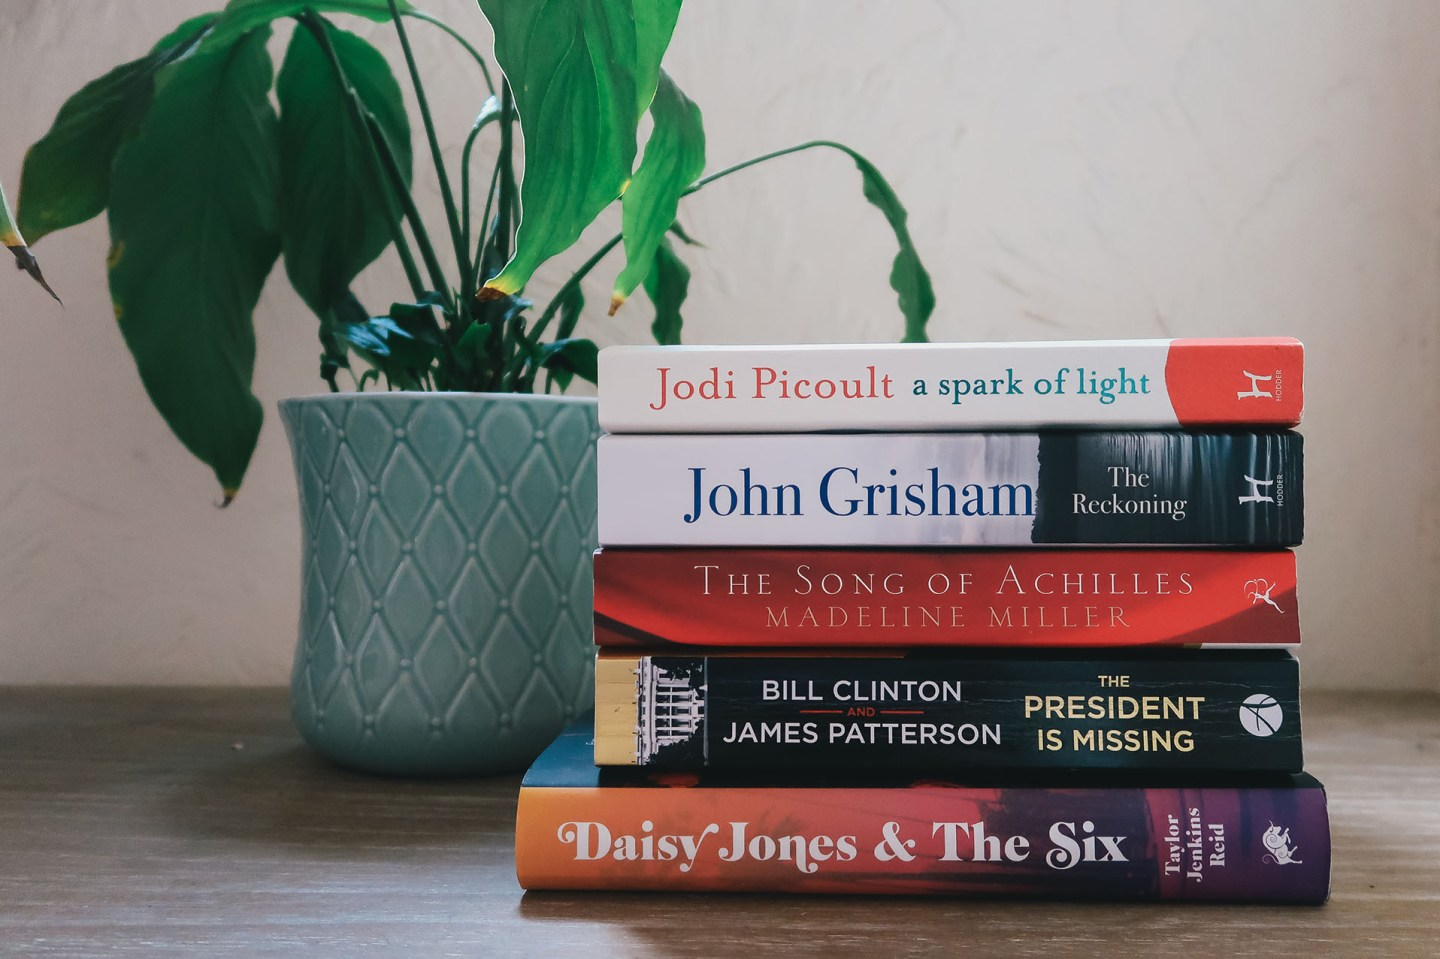 Book stack and plant